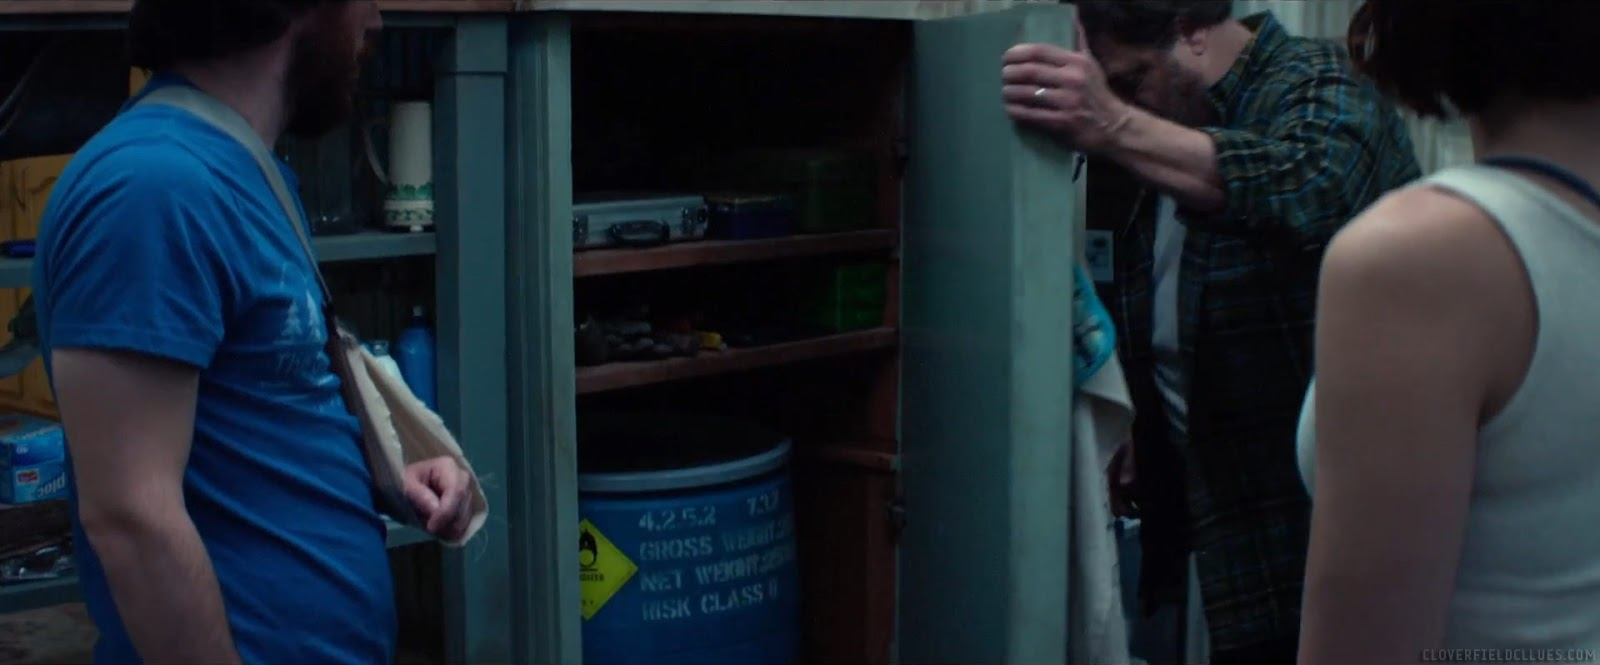 Cloverfield Clues: 10 Cloverfield Lane Trailer - Out There